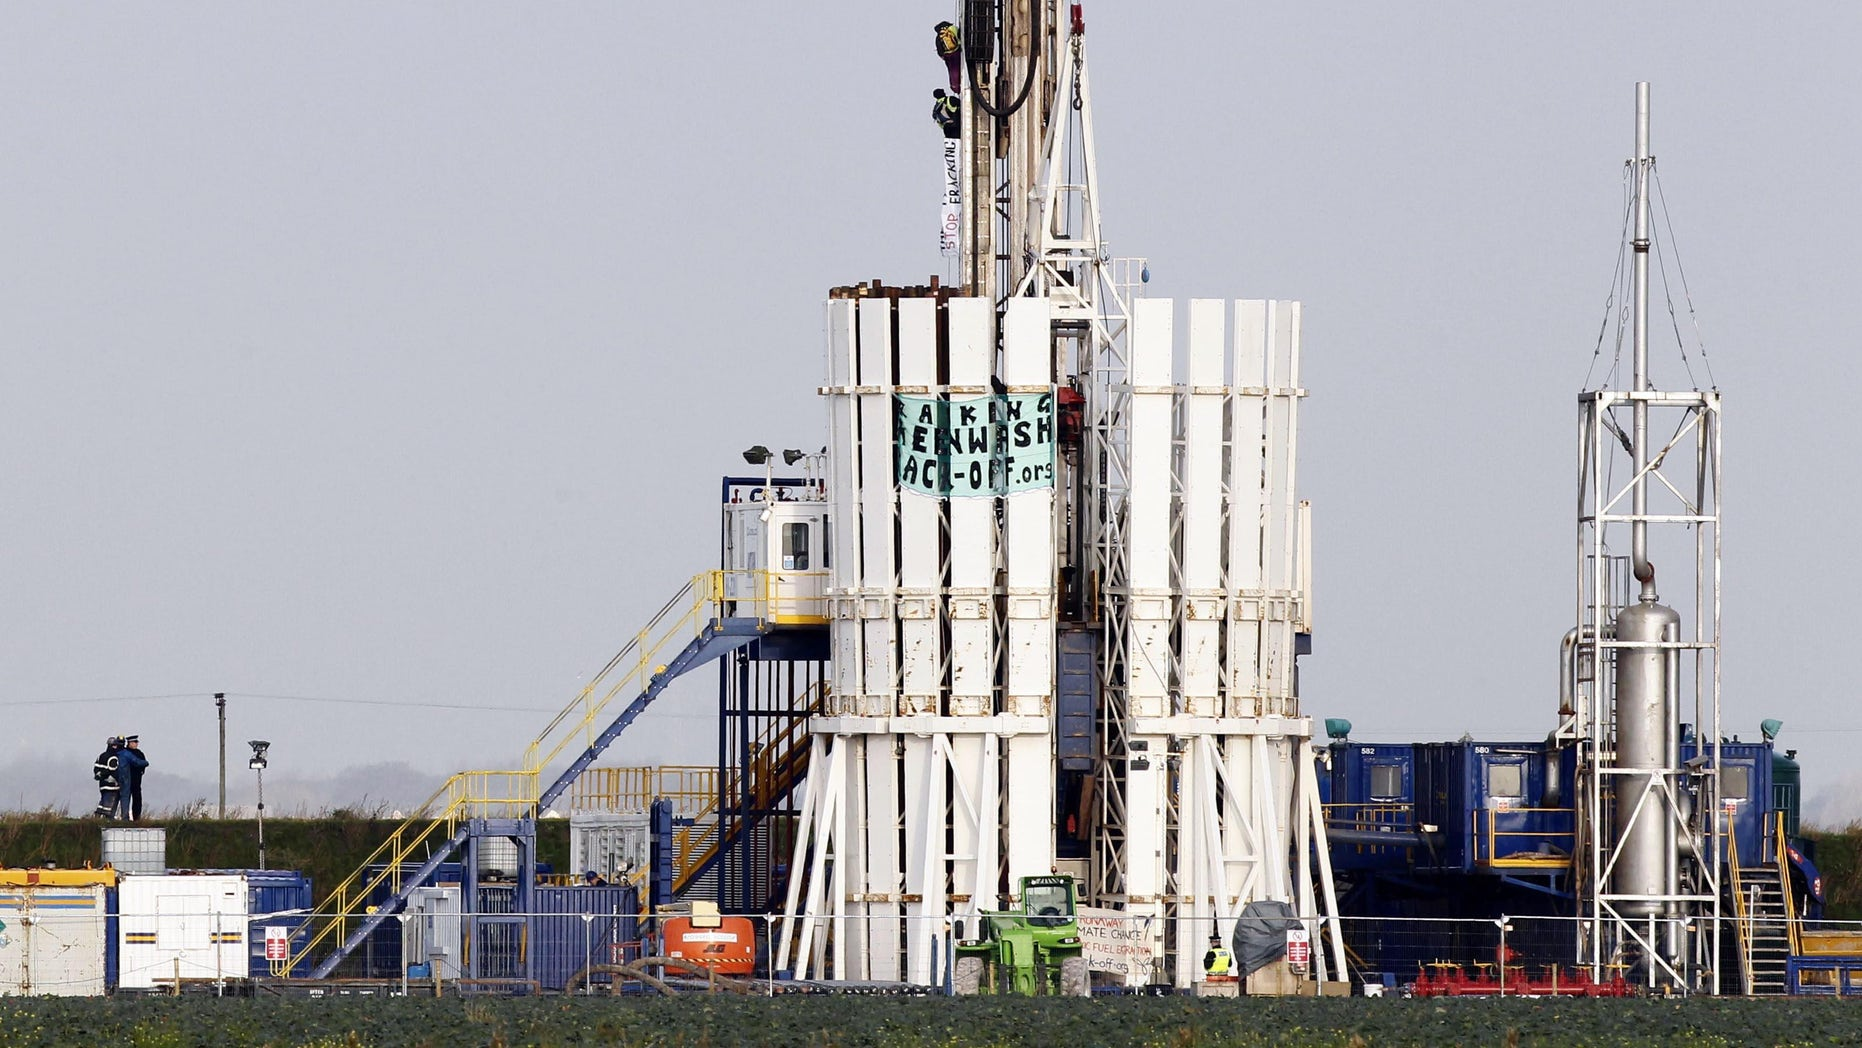 Nov. 2, 2011: Protestors scale a shale gas rig at Banks, near Southport, England bringing a halt to work at the Cuadrilla Resources site.